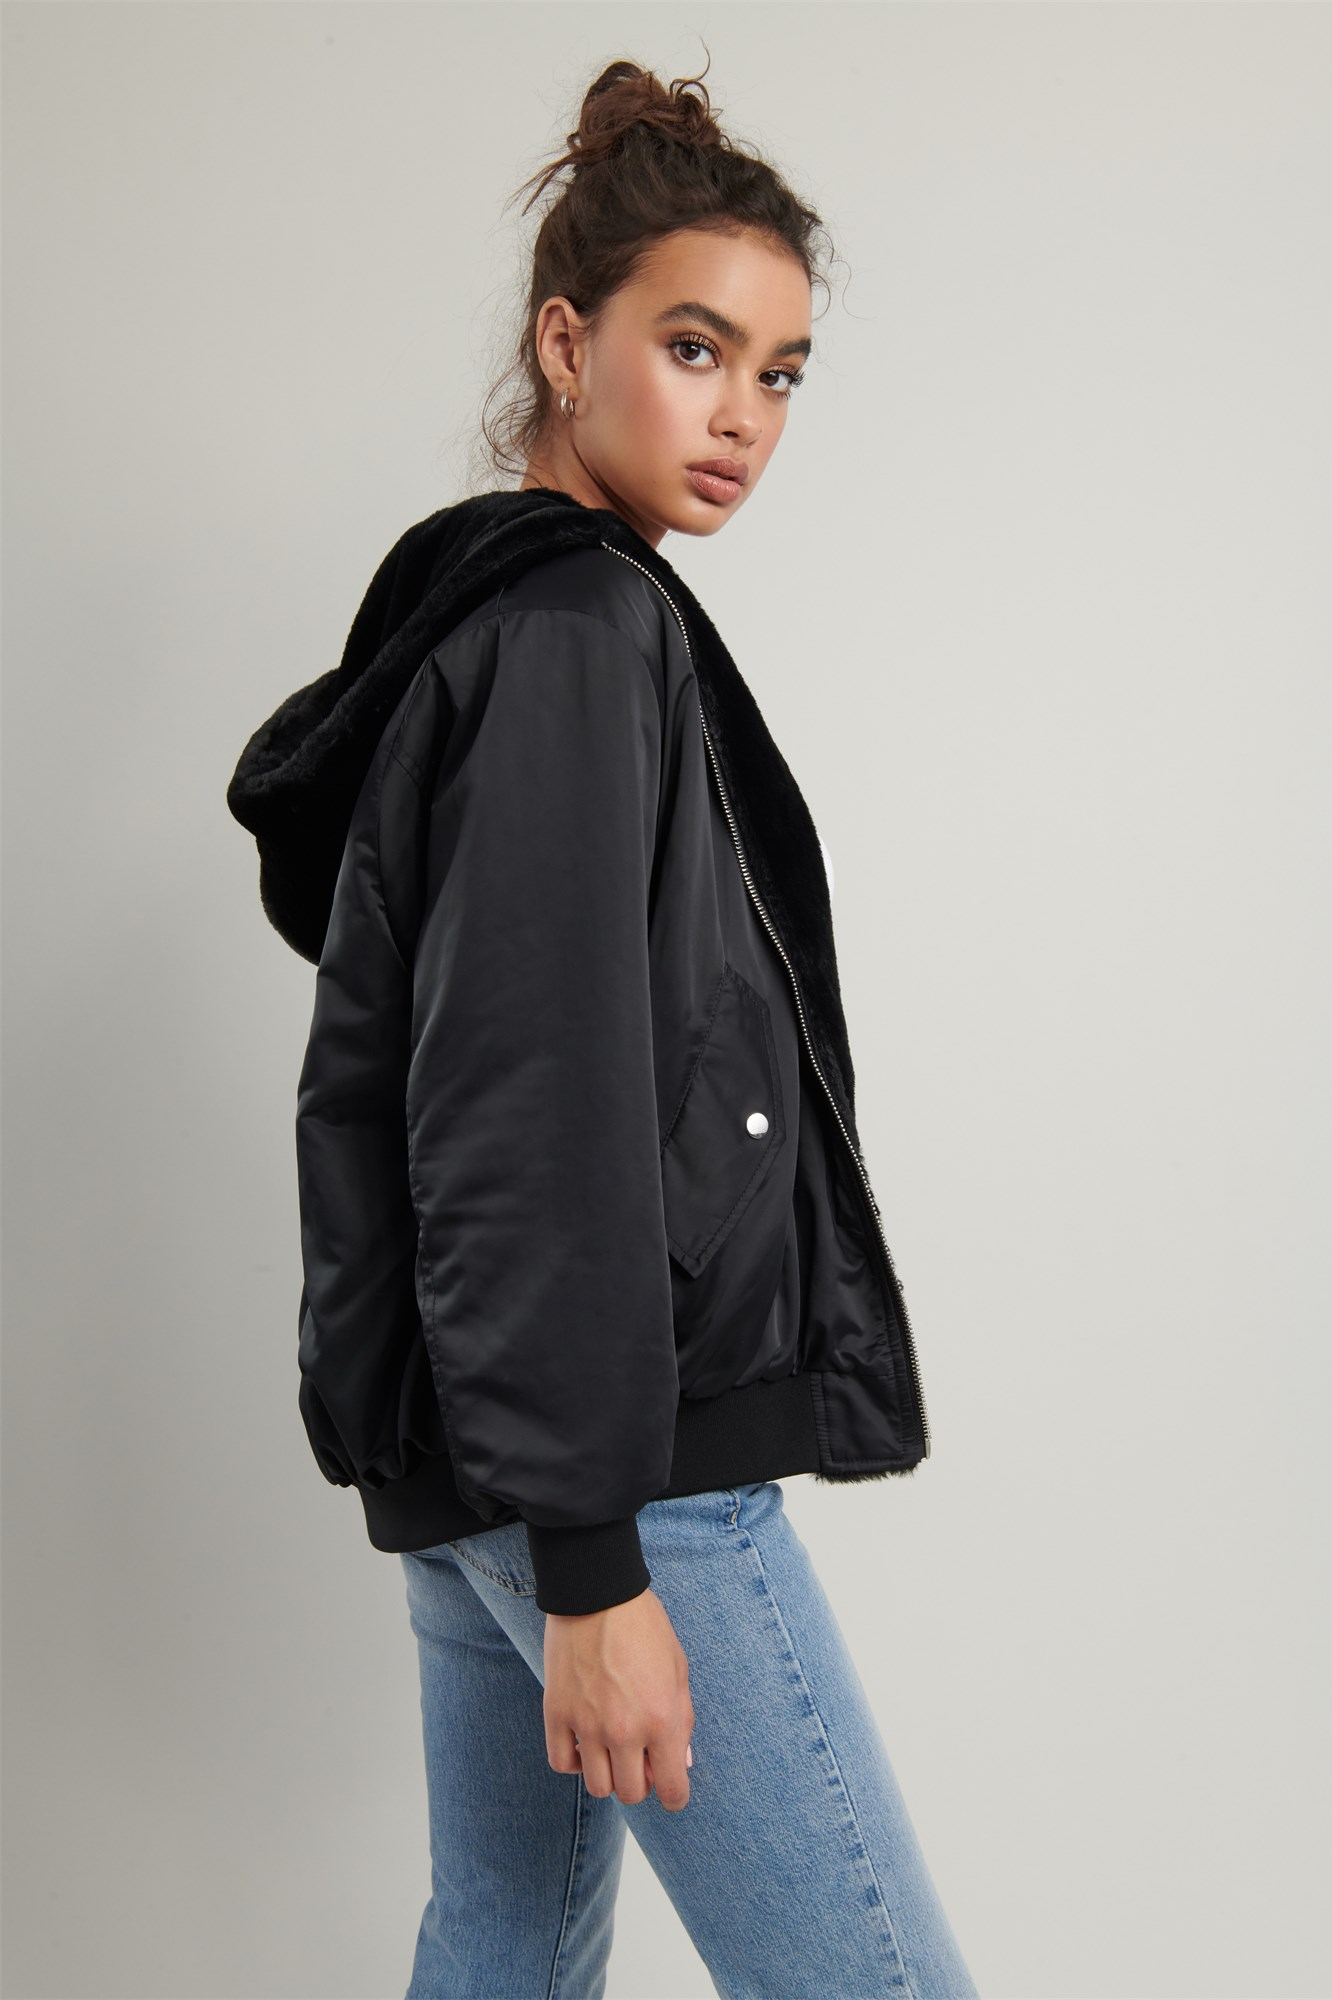 Image 7 of The Two-Faced Reversible Bomber